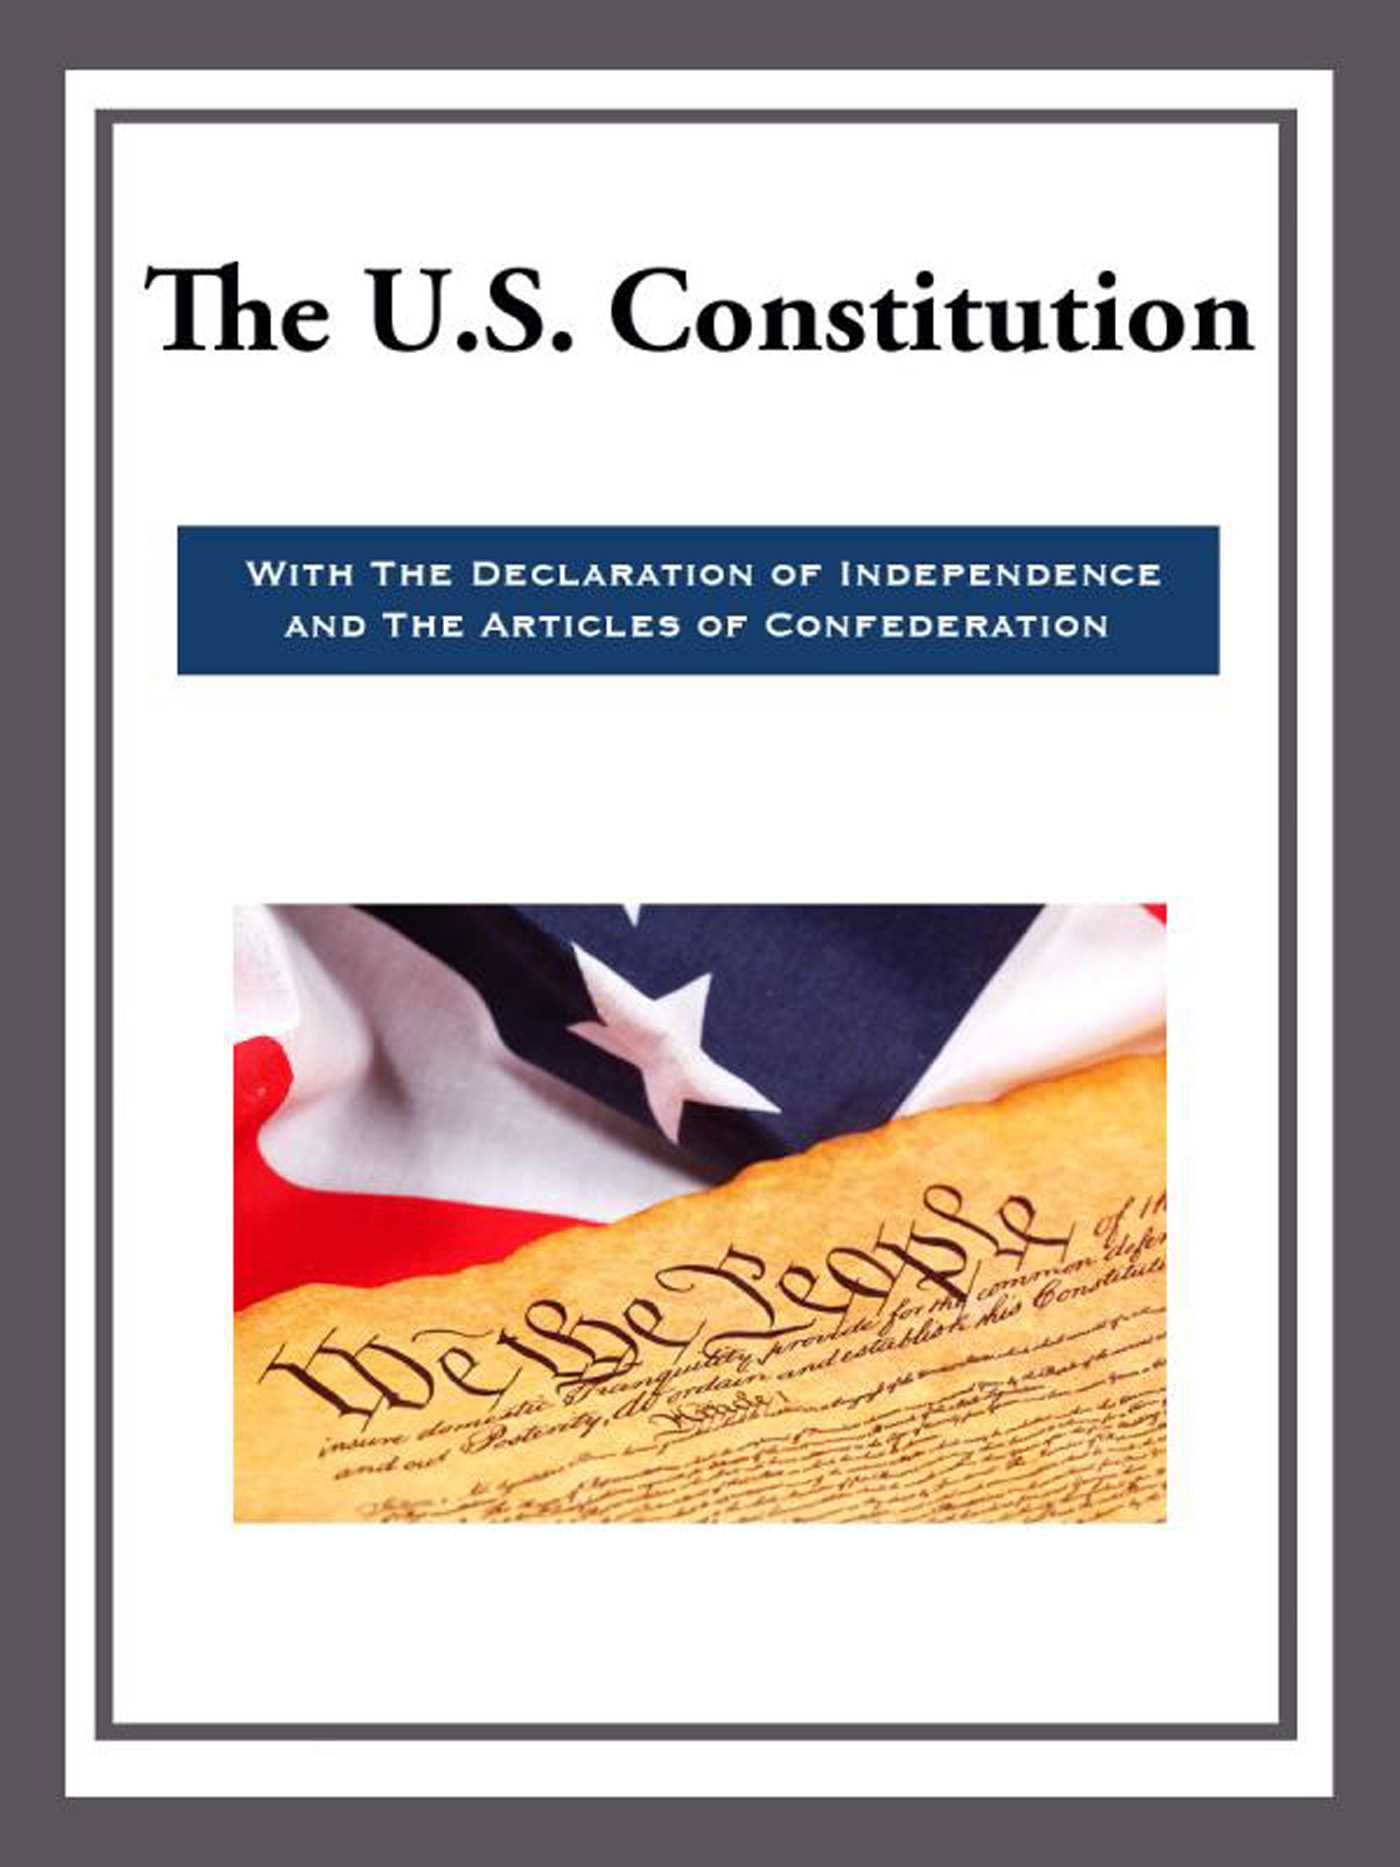 an overview of the articles of confederation in the united states of america